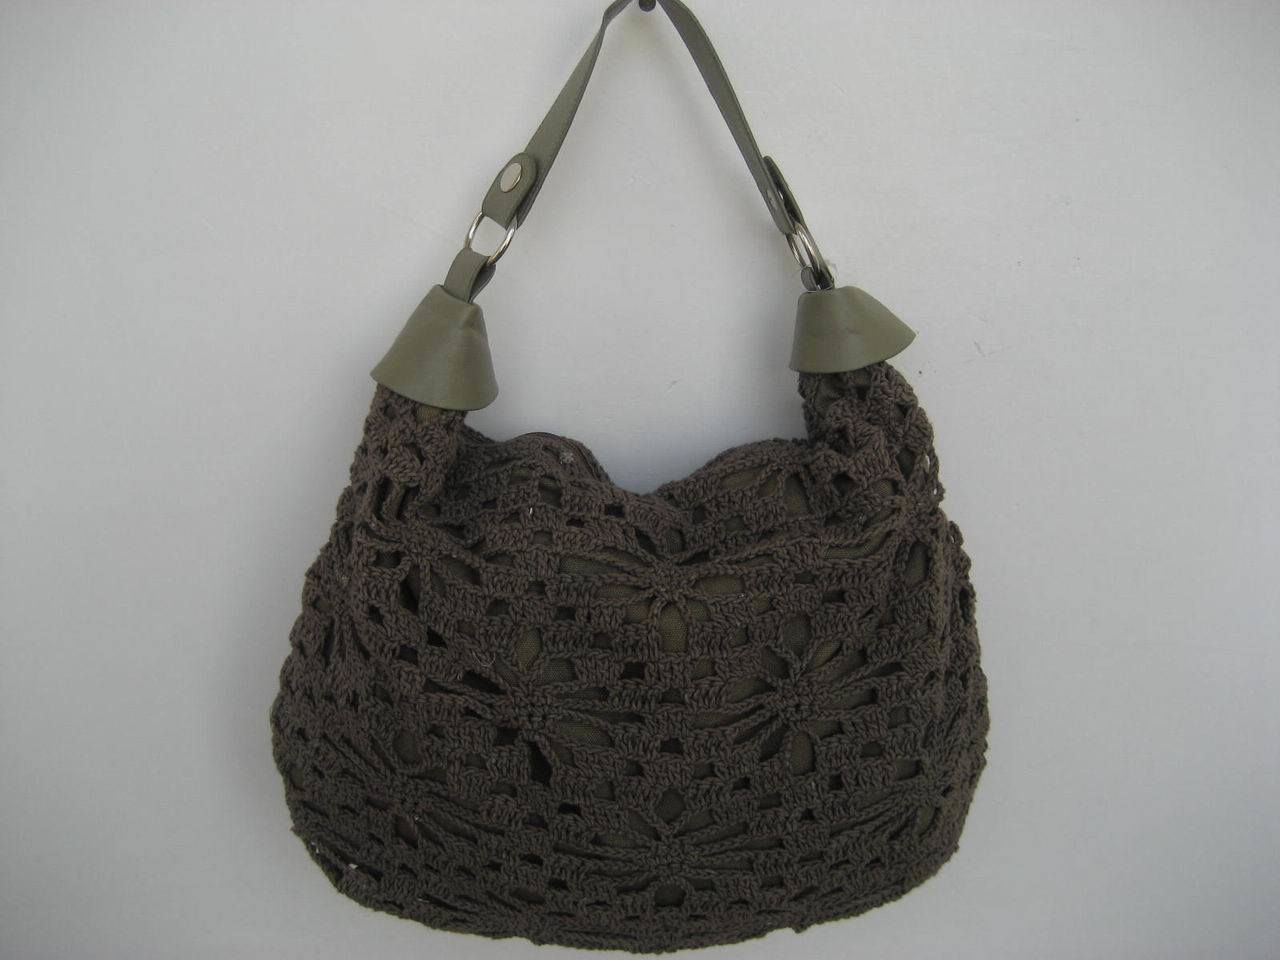 Crochet Handbags : China Cotton Crochet Bag - China Woven Tote Bag, Fashionable Handbag